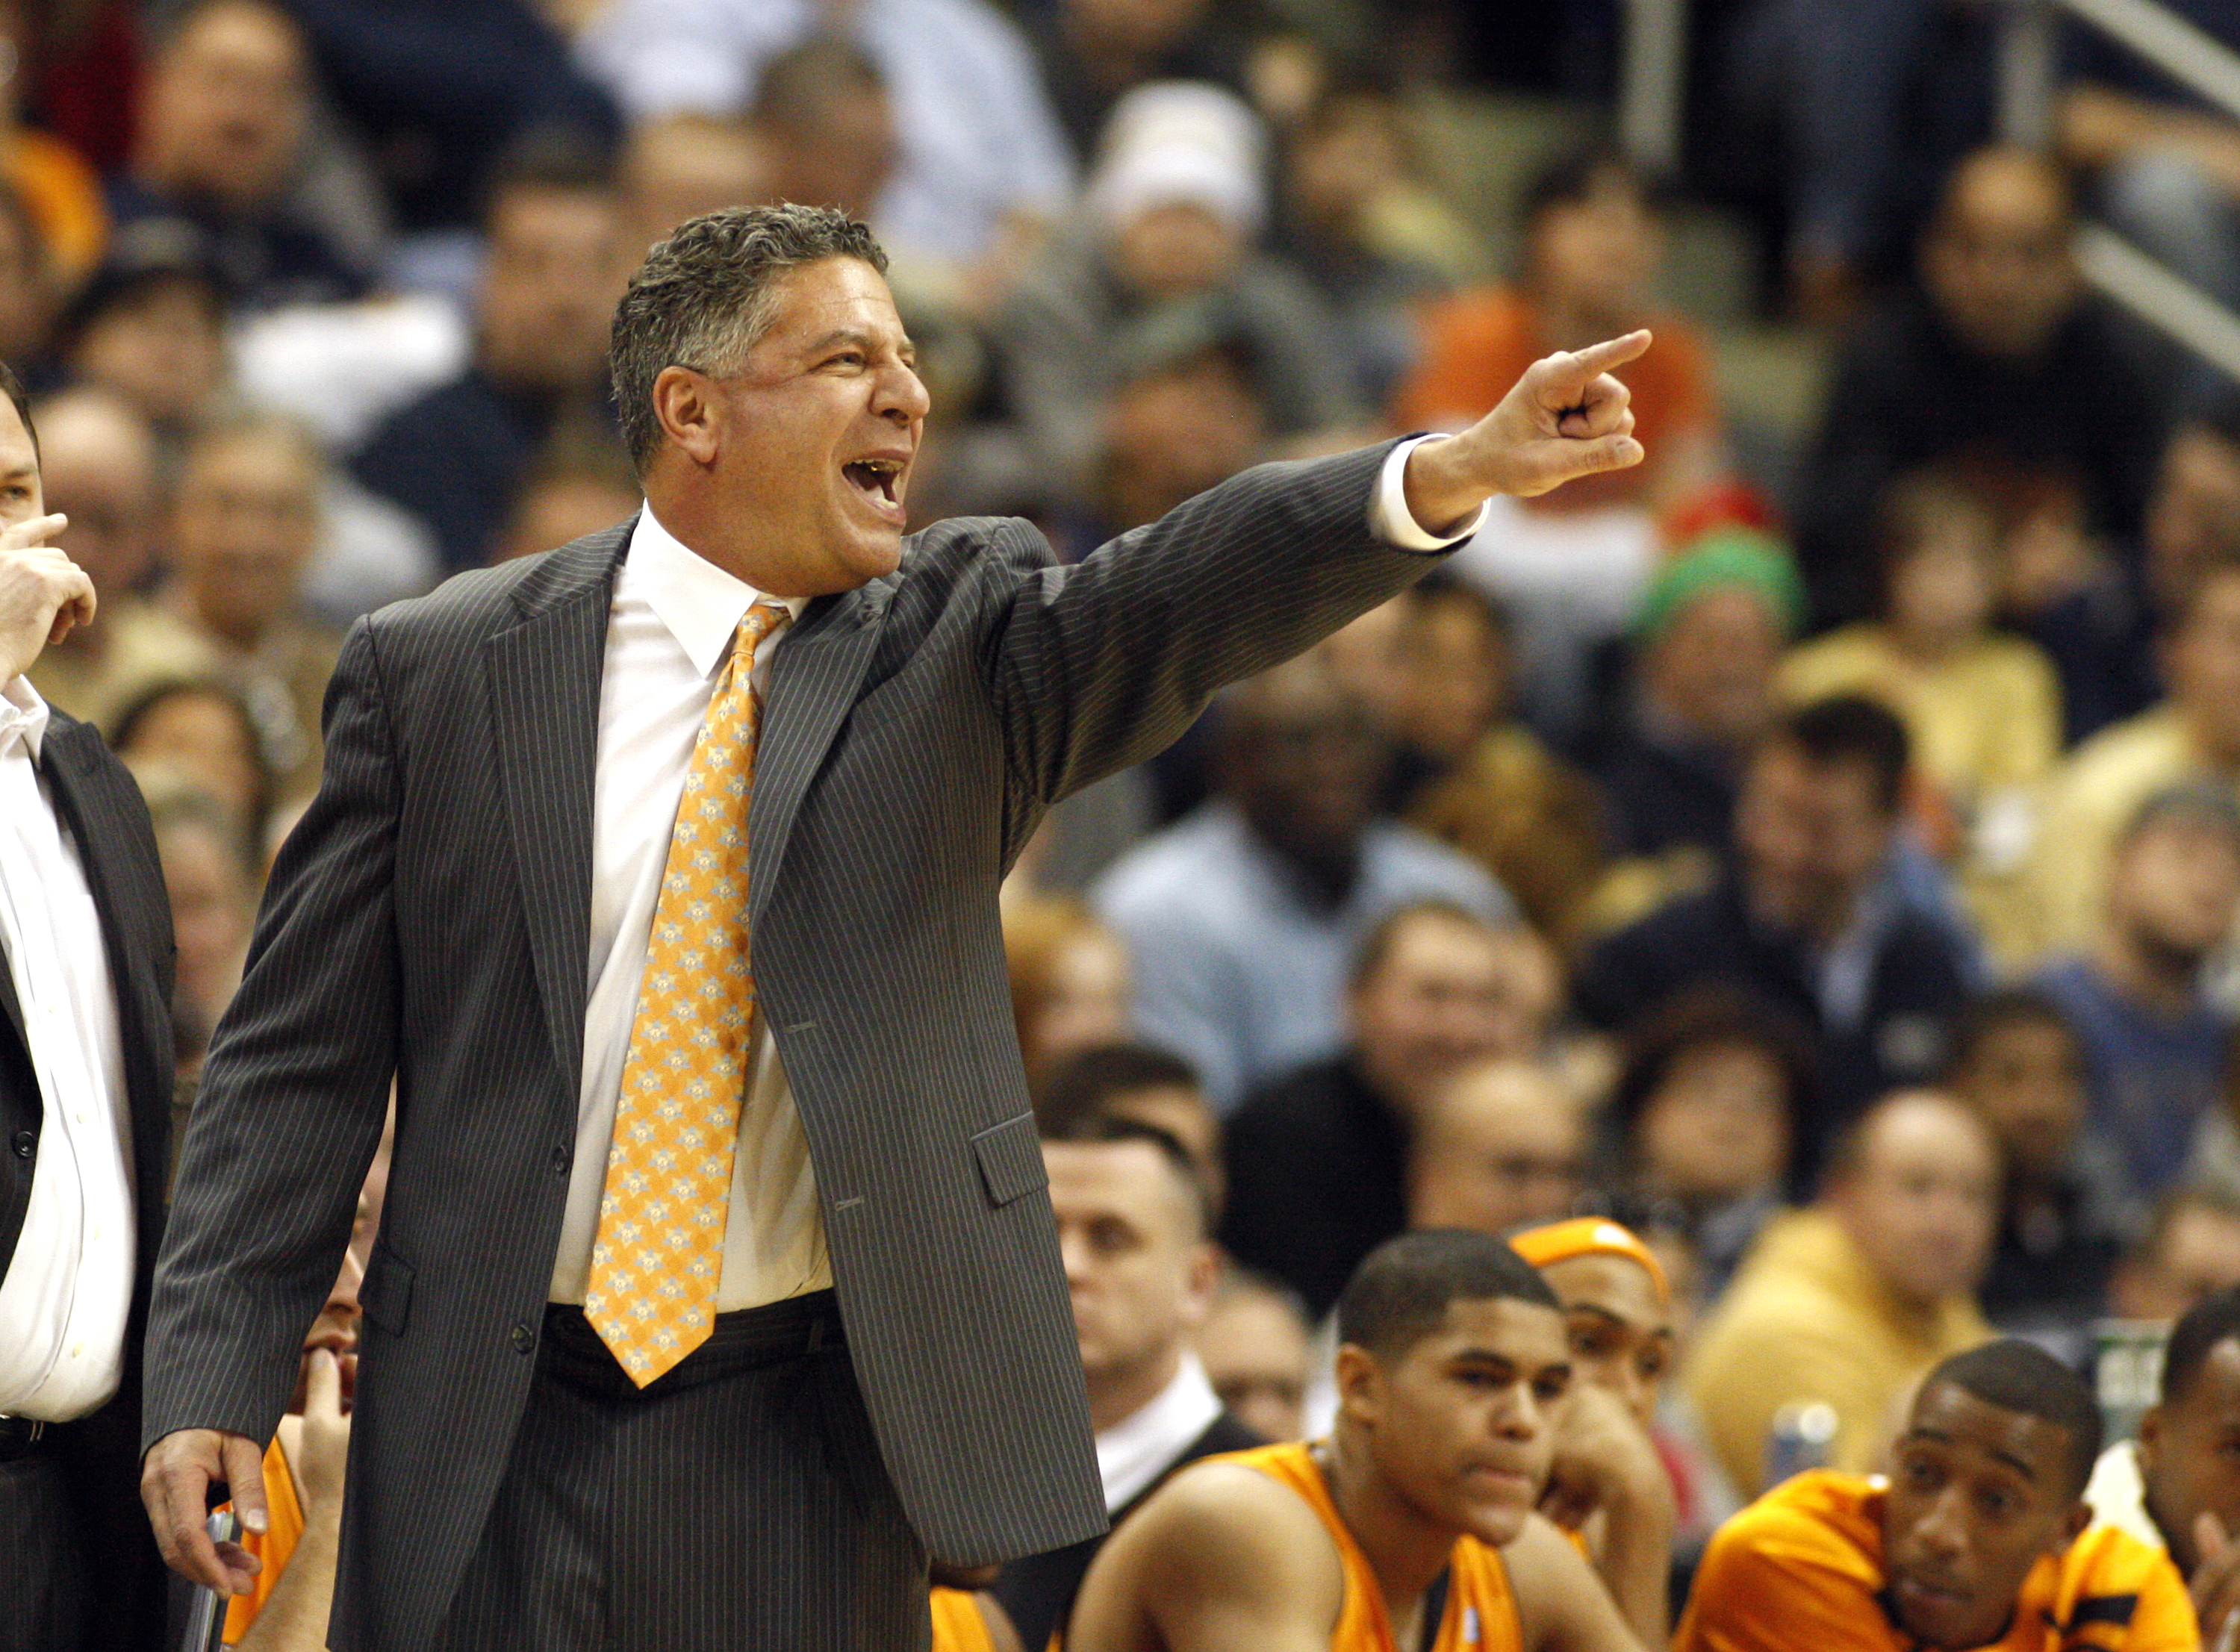 PITTSBURGH, PA - DECEMBER 11:  Tennessee Volunteers head coach Bruce Pearl directs his team against the Pittsburgh Panthers during the SEC/BIG EAST Invitational at Consol Energy Center on December 11, 2010 in Pittsburgh, Pennsylvania.The Volunteers defeat